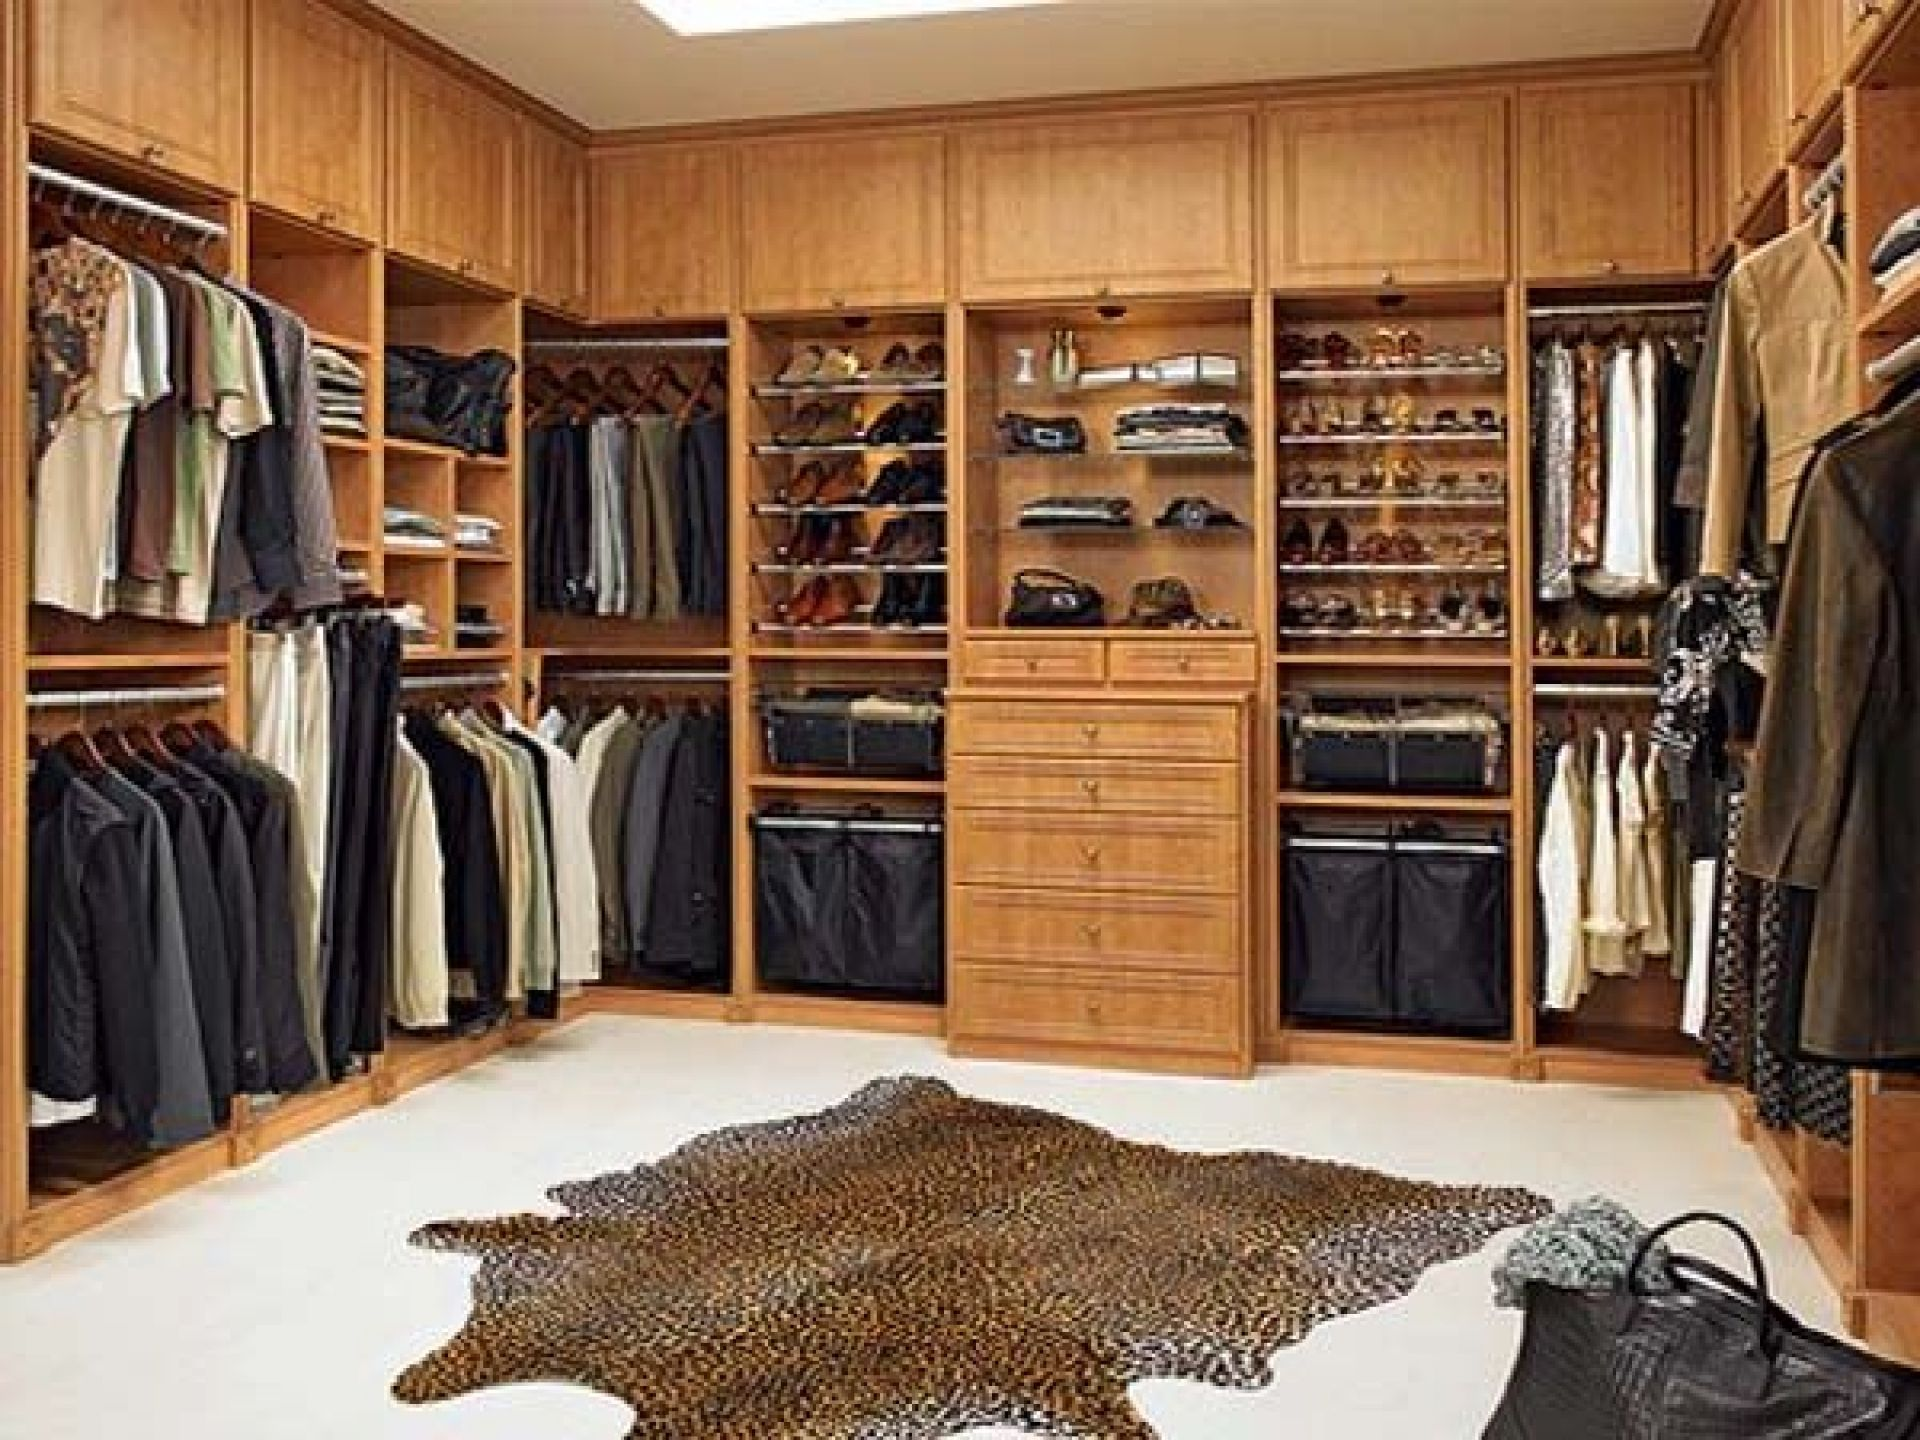 Ikea Closet Design Ideas 25 best ideas about ikea walk in wardrobe on pinterest ikea pax walk in closet ikea and ikea wardrobe storage Ikea Closet Pax Google Search